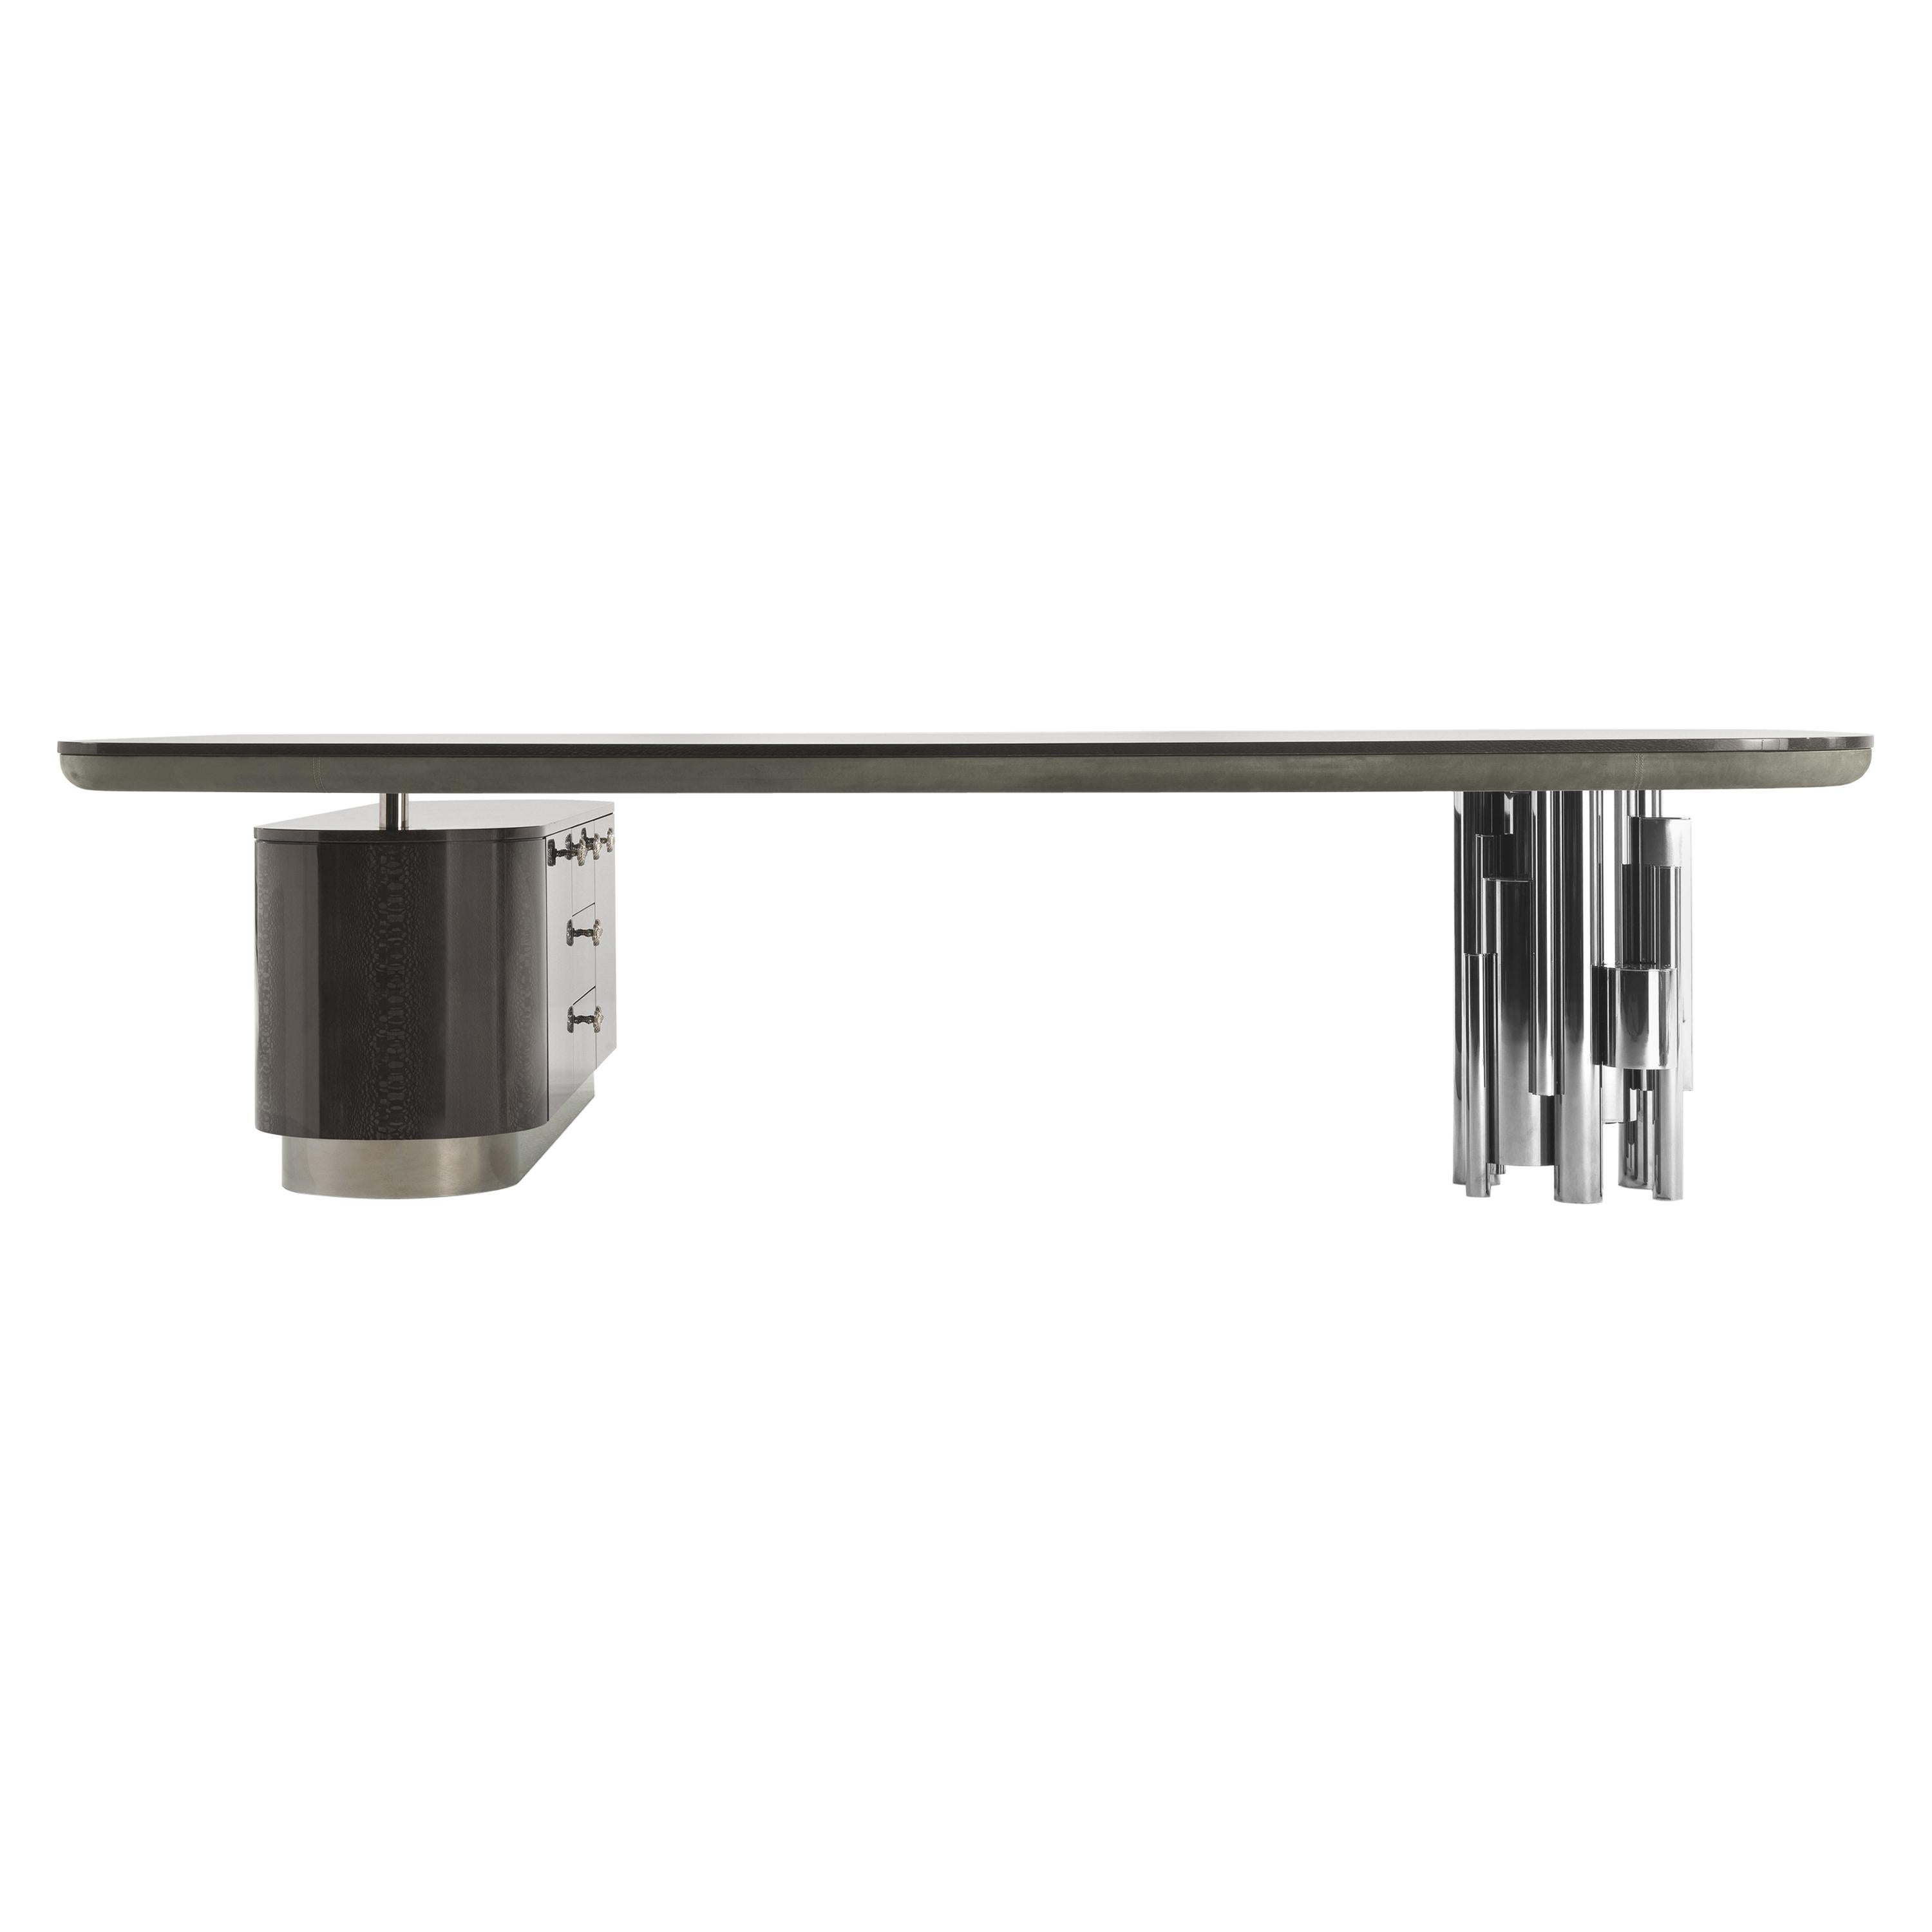 Antigua Writing Desk in Carbalho Grey with Metal Base by Roberto Cavalli